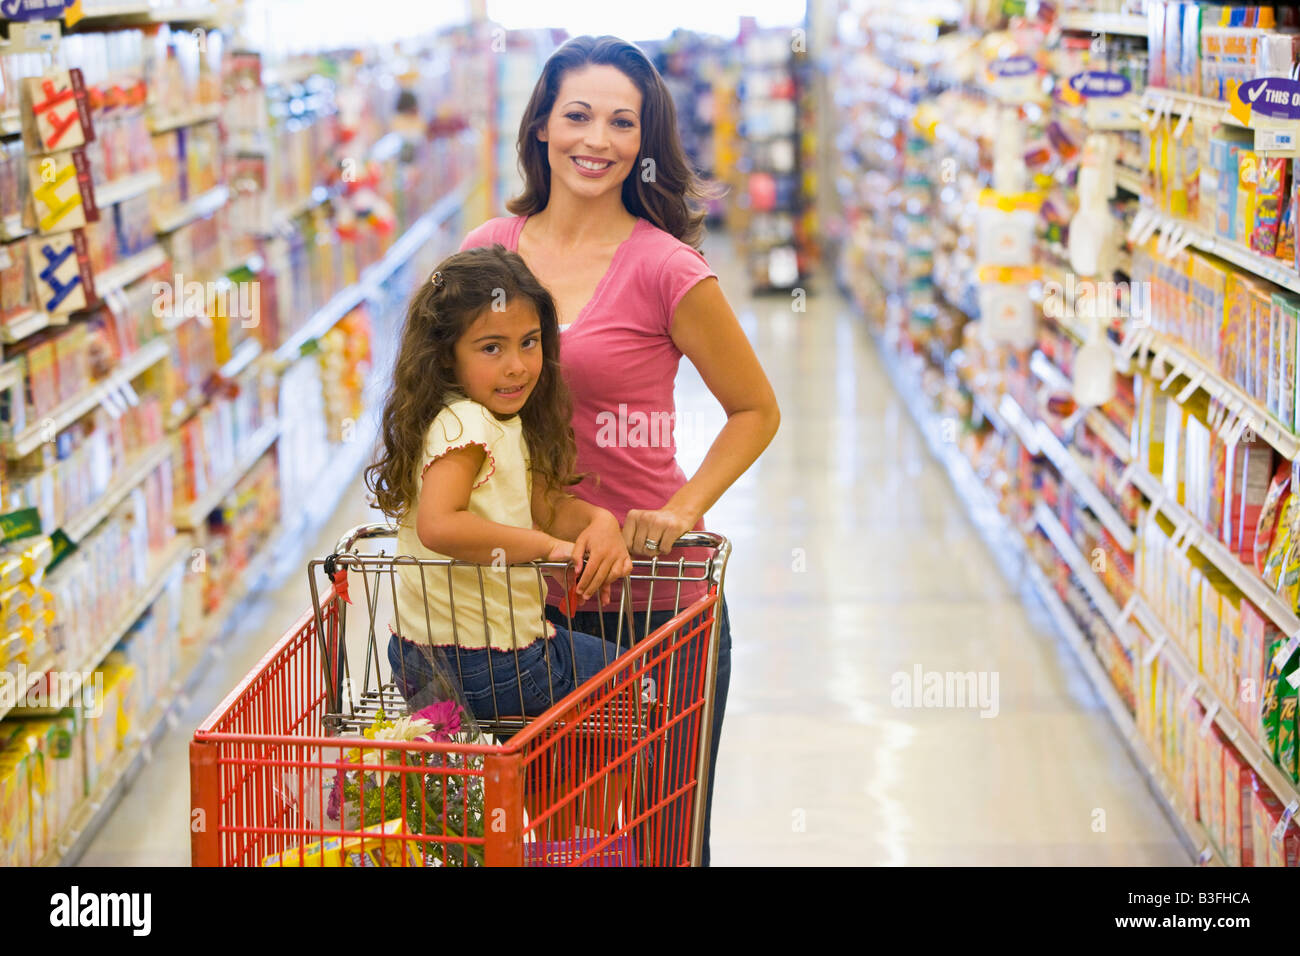 Mother and young daughter shopping at a grocery store. - Stock Image